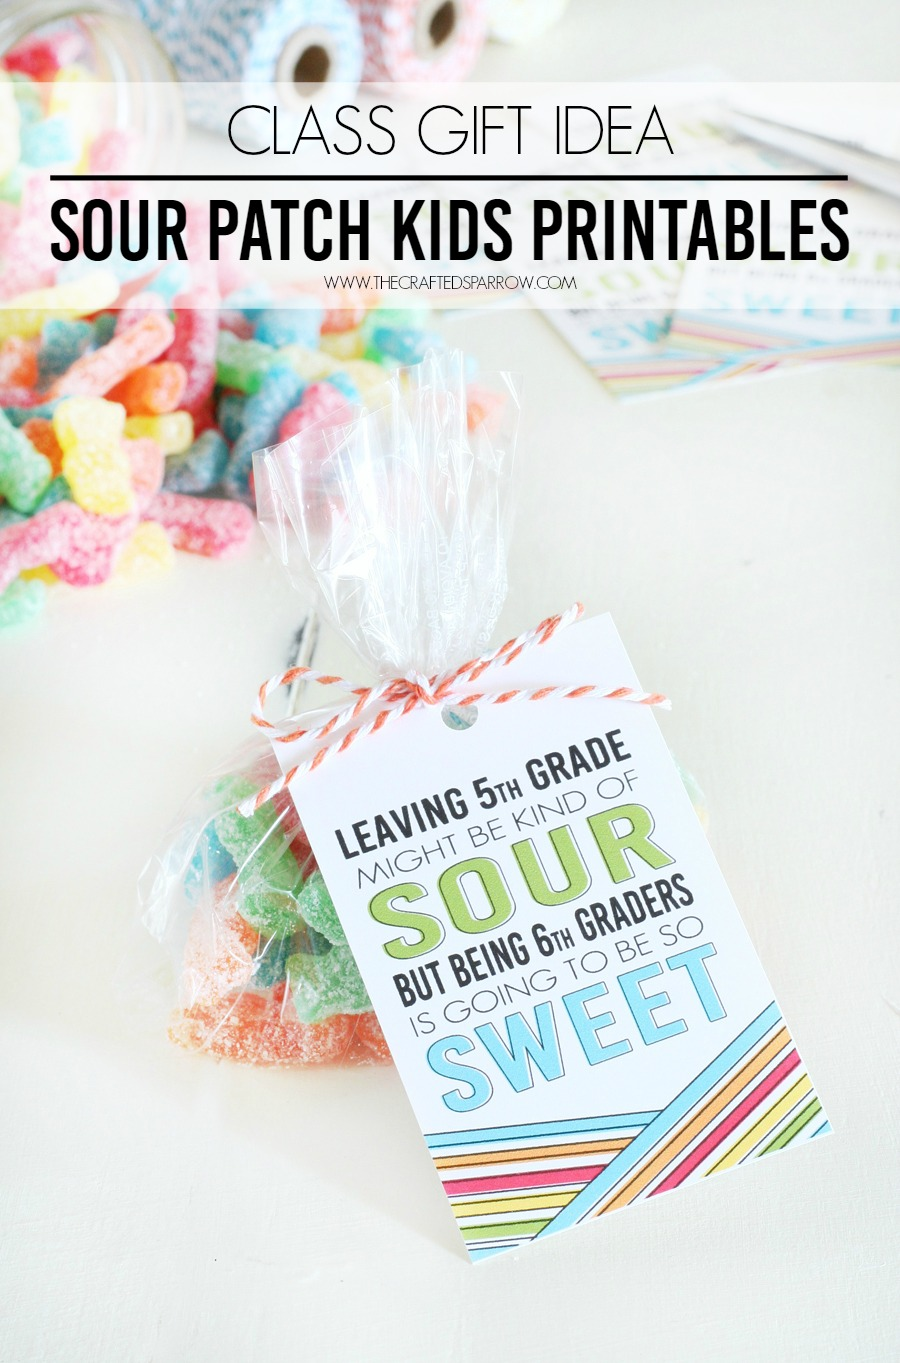 Classroom Keepsake Ideas ~ Class gift idea sour patch kids printables